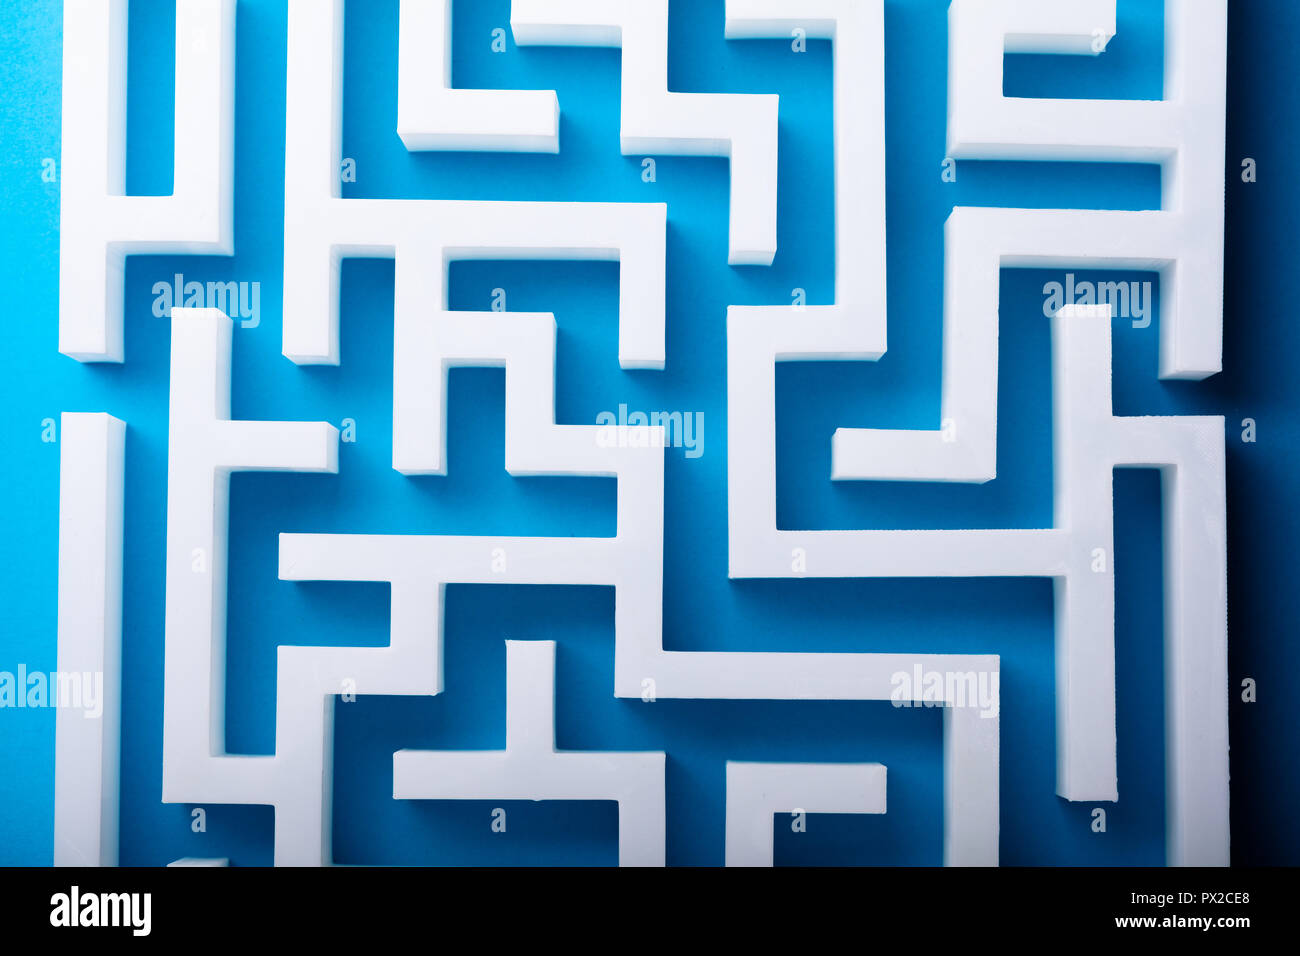 High Angle View Of White Maze On Blue Background - Stock Image